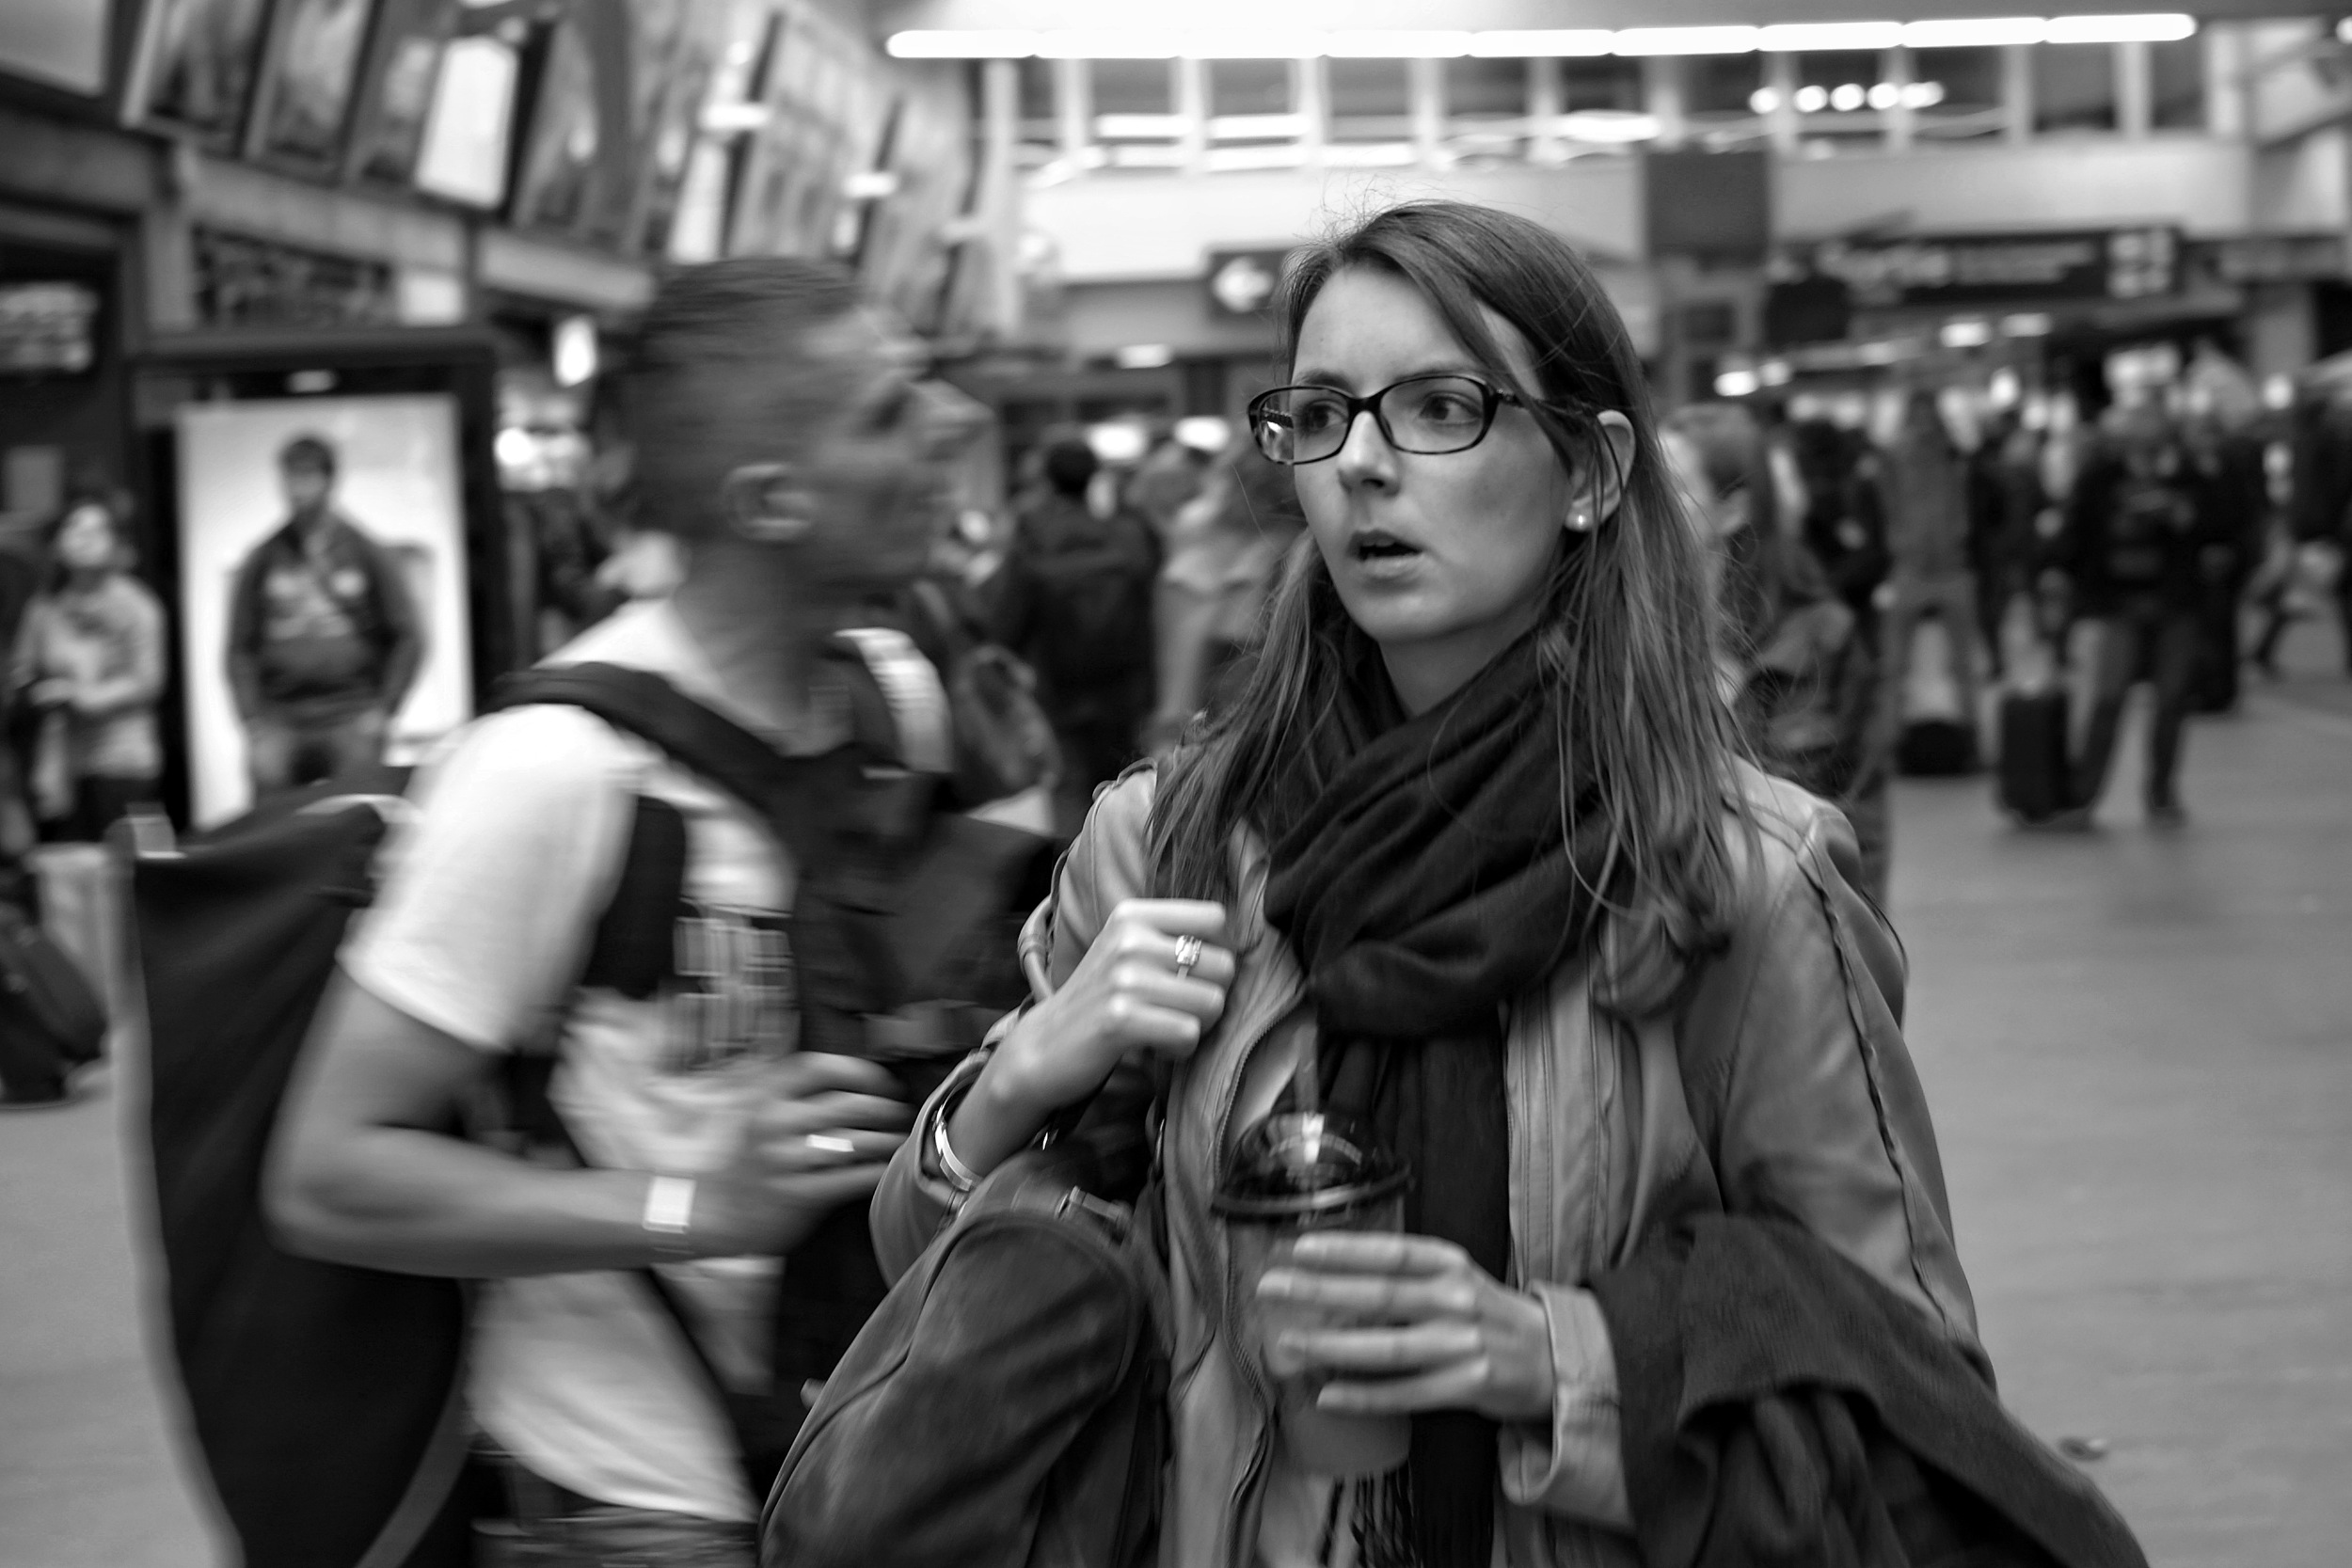 Fast moving commuters at Montparnasse station in Paris - Fuji X-Pro1